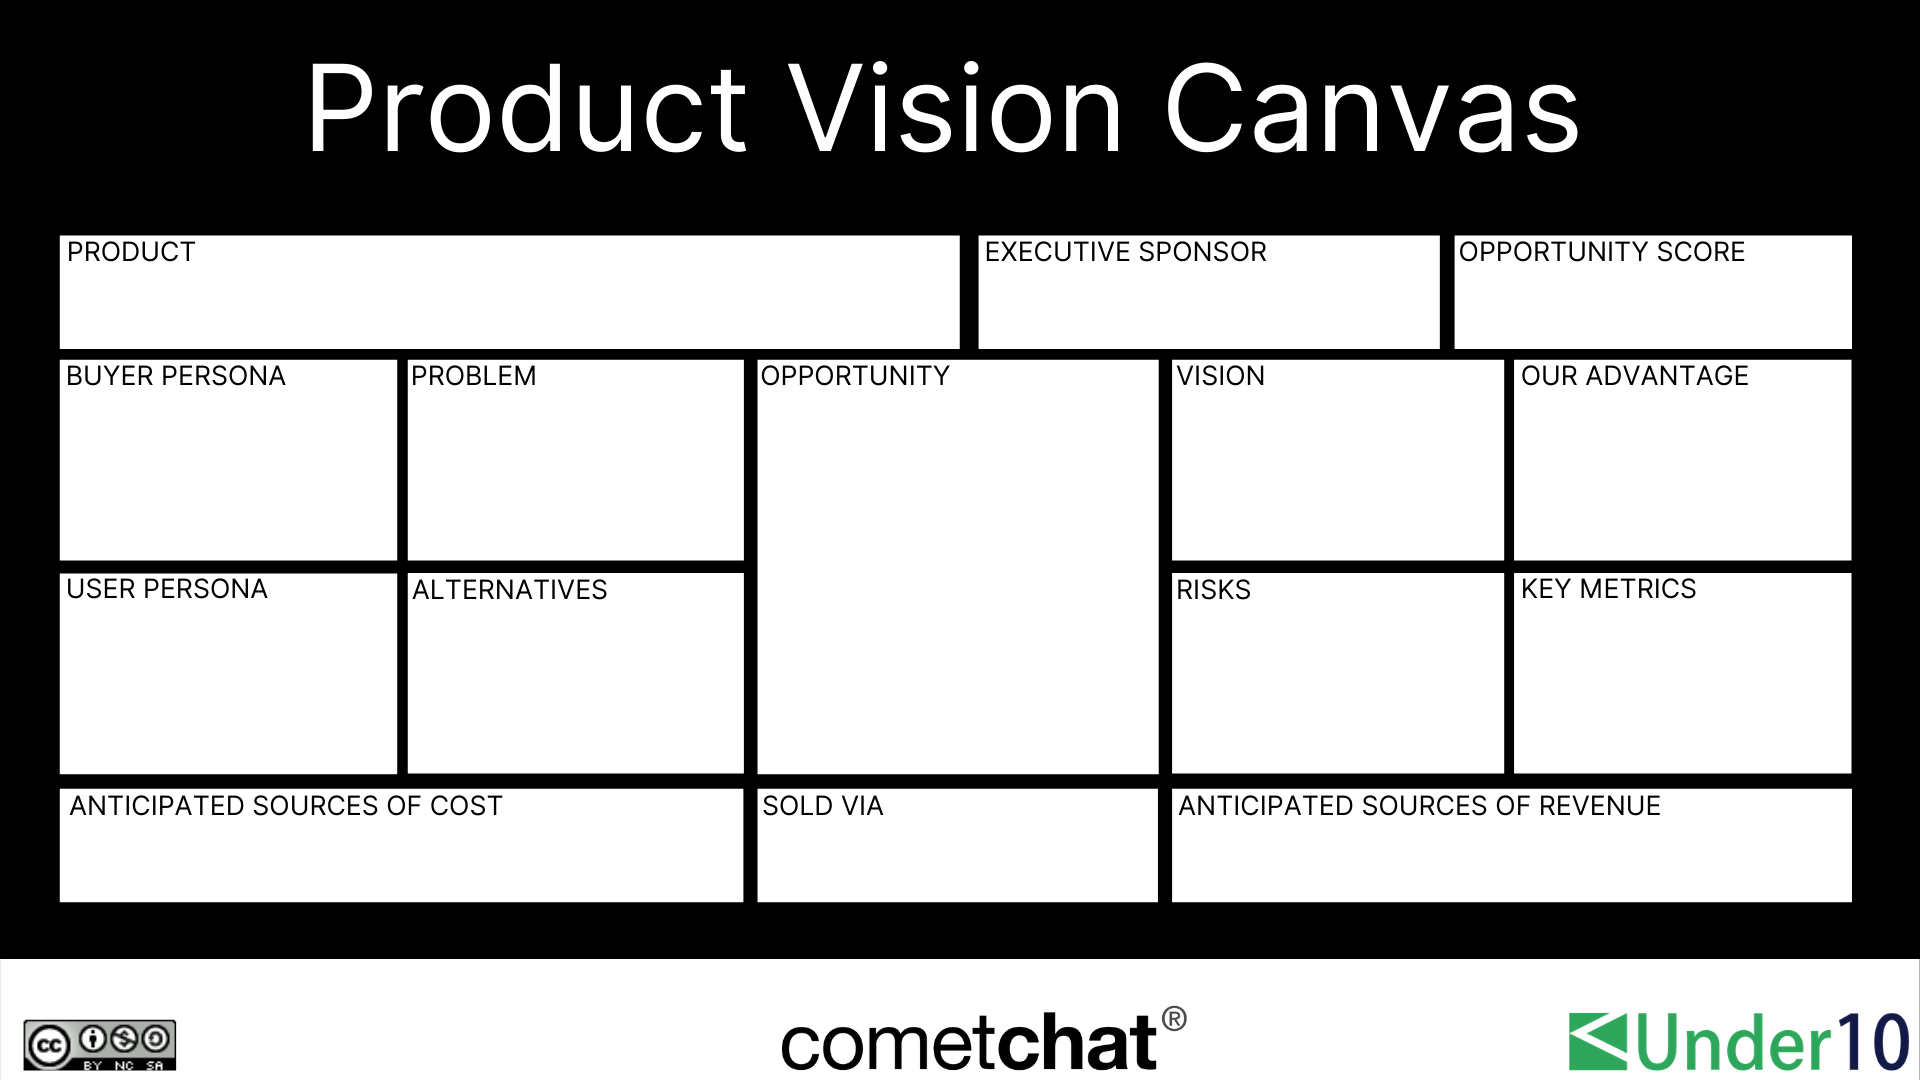 Product Vision Canvas Template